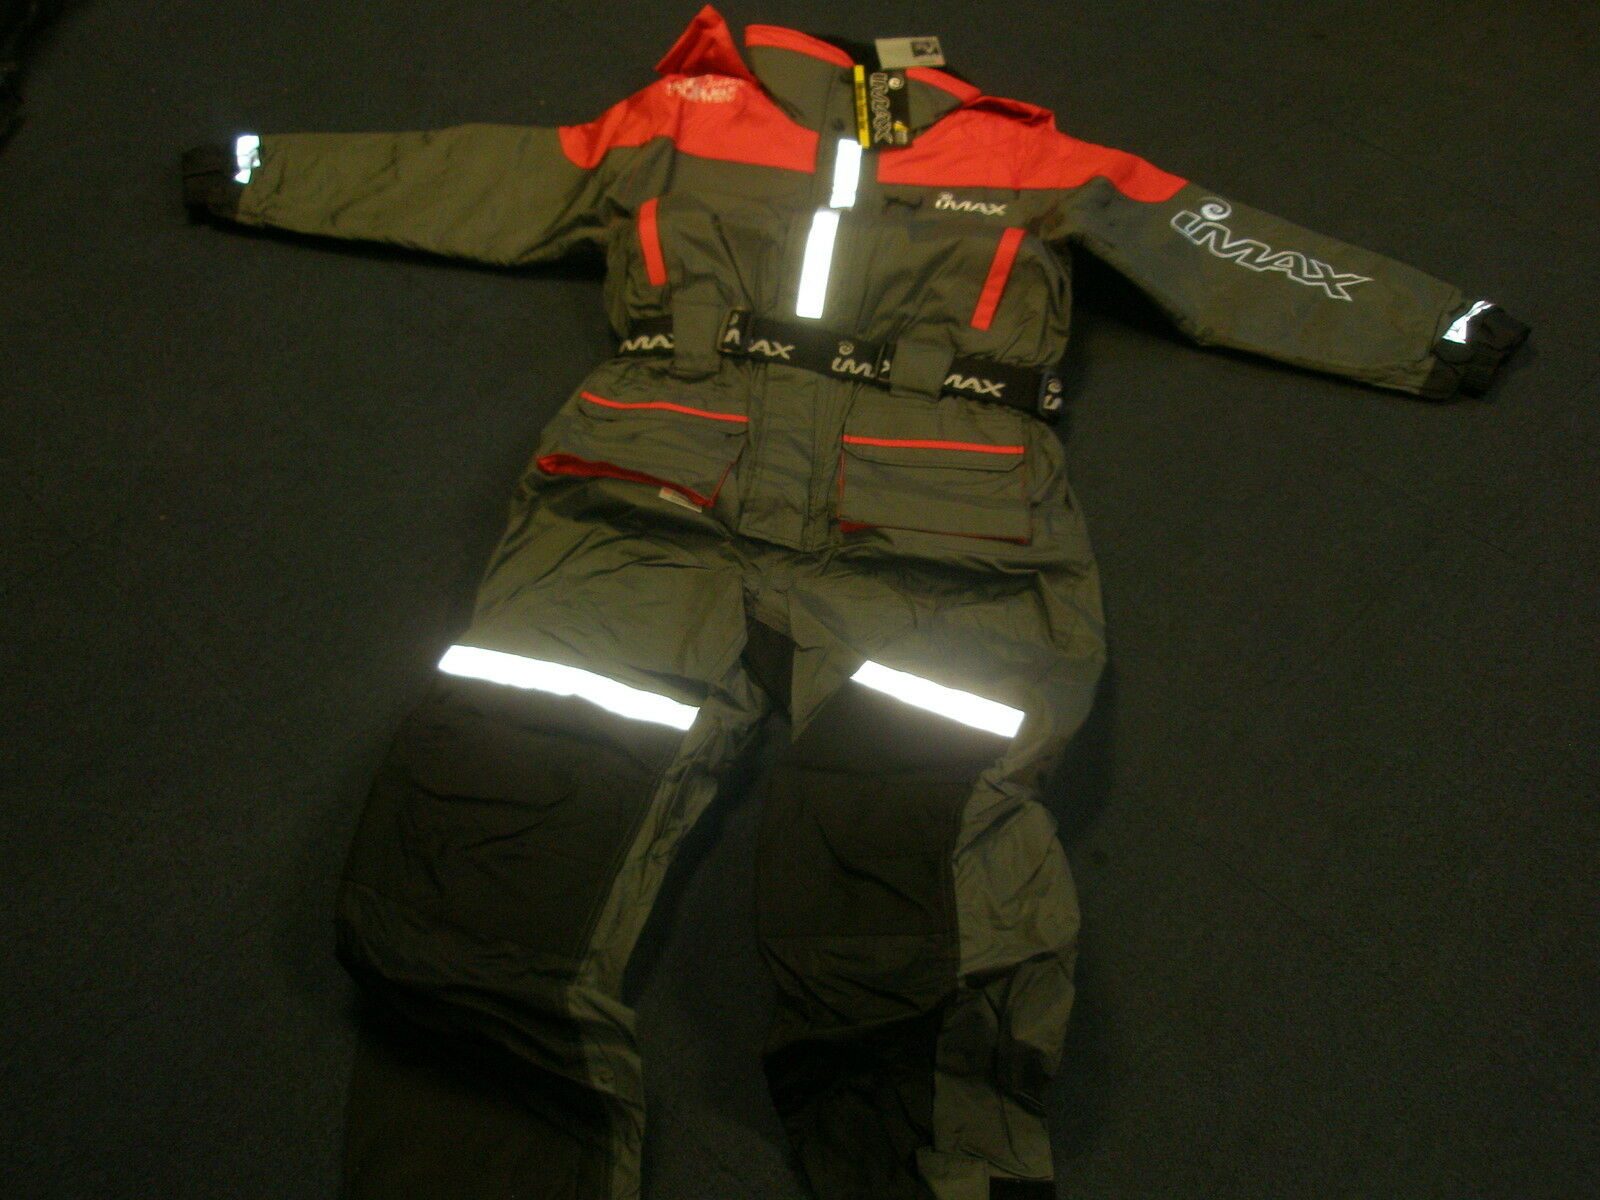 Imax ocean 1 piece floatation flotation suit-all Tailles fishing